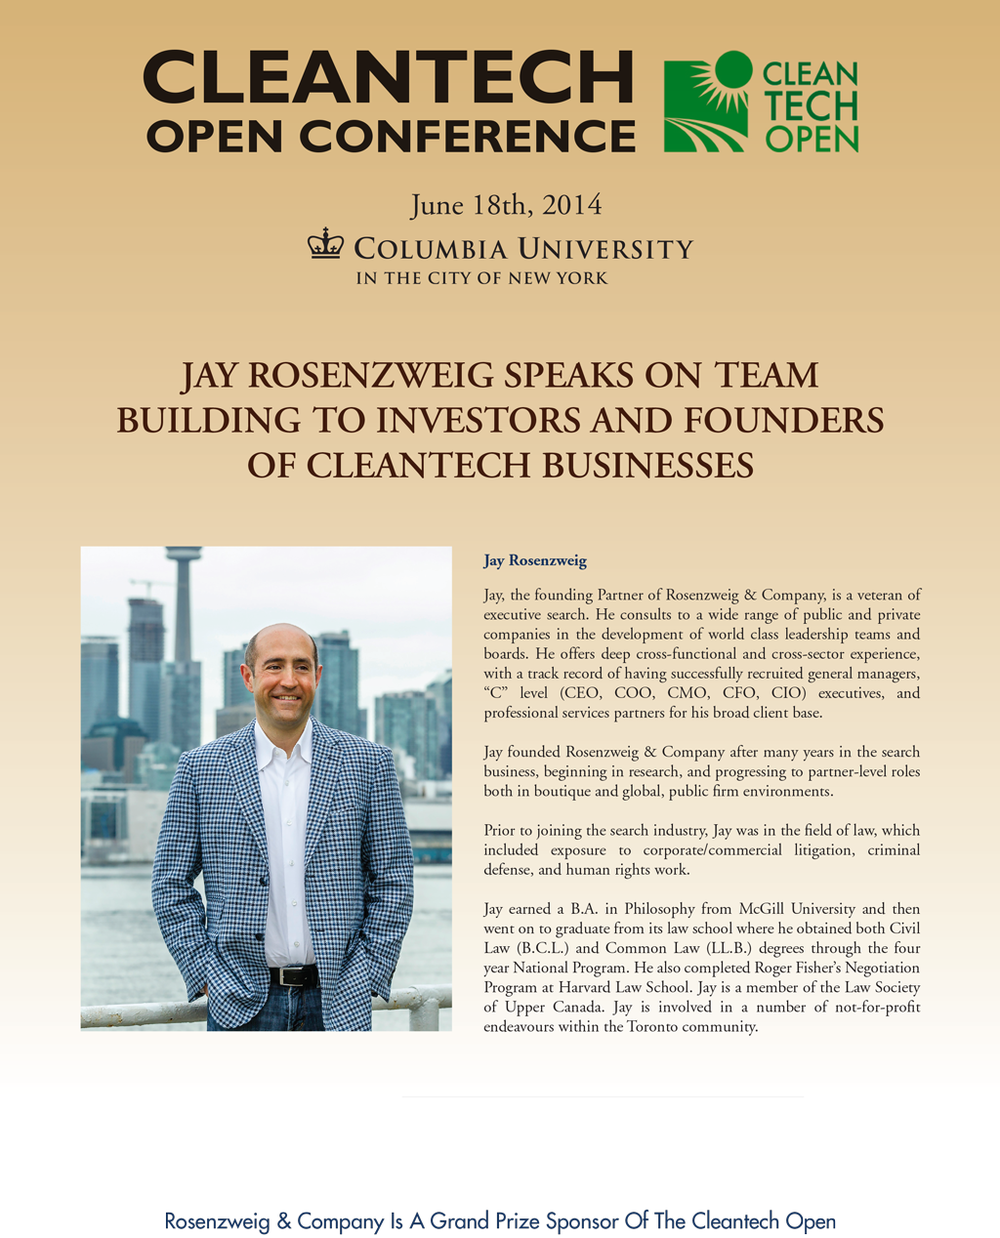 Jay Rosenzweig Speaks on Clean Tech Executive Recruitment at Columbia University